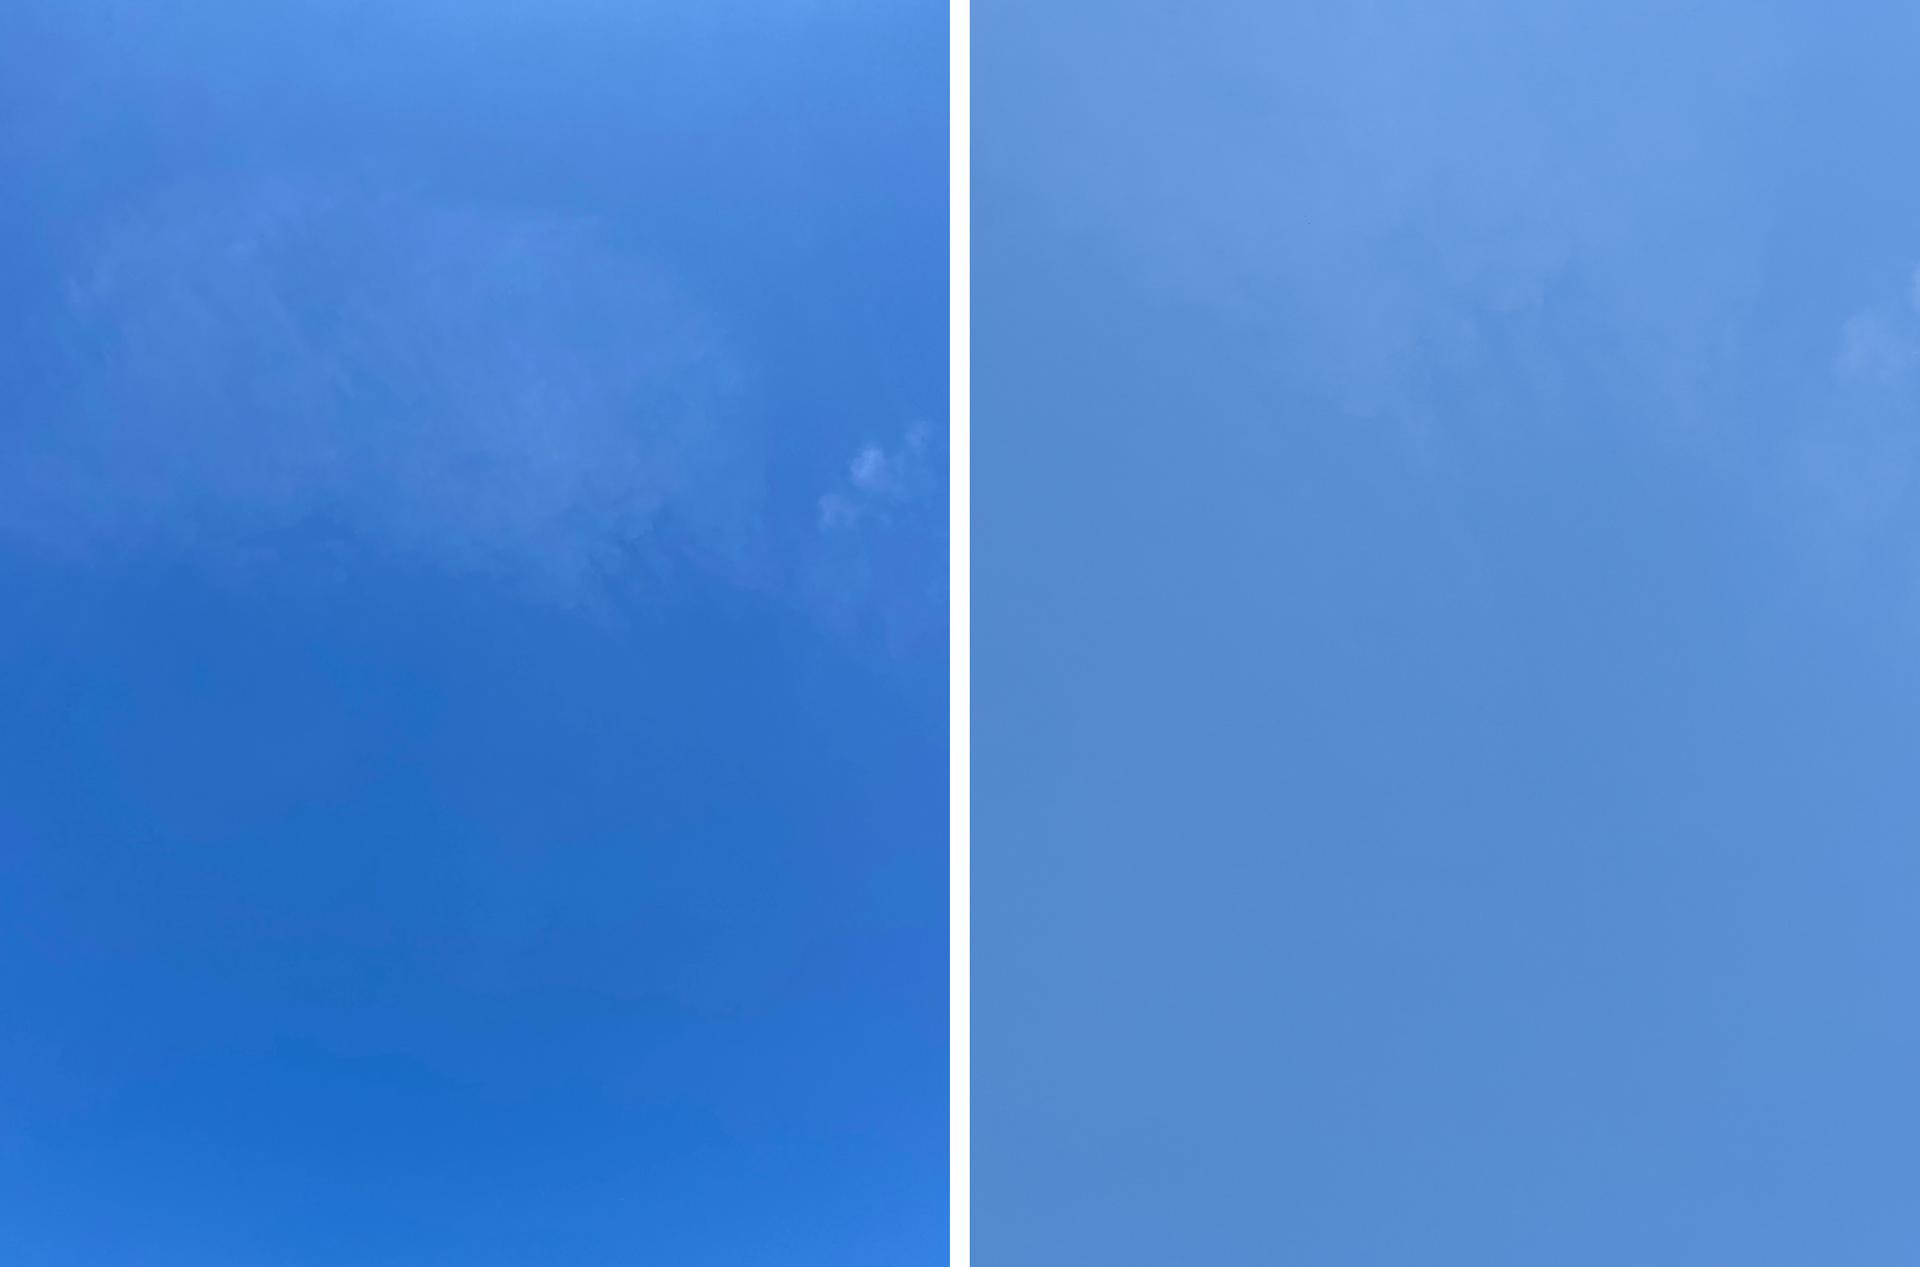 iPhone 11 Pro and Pixel 4 Cameras: Color temp, Color Quality, and Consistency Across Lenses